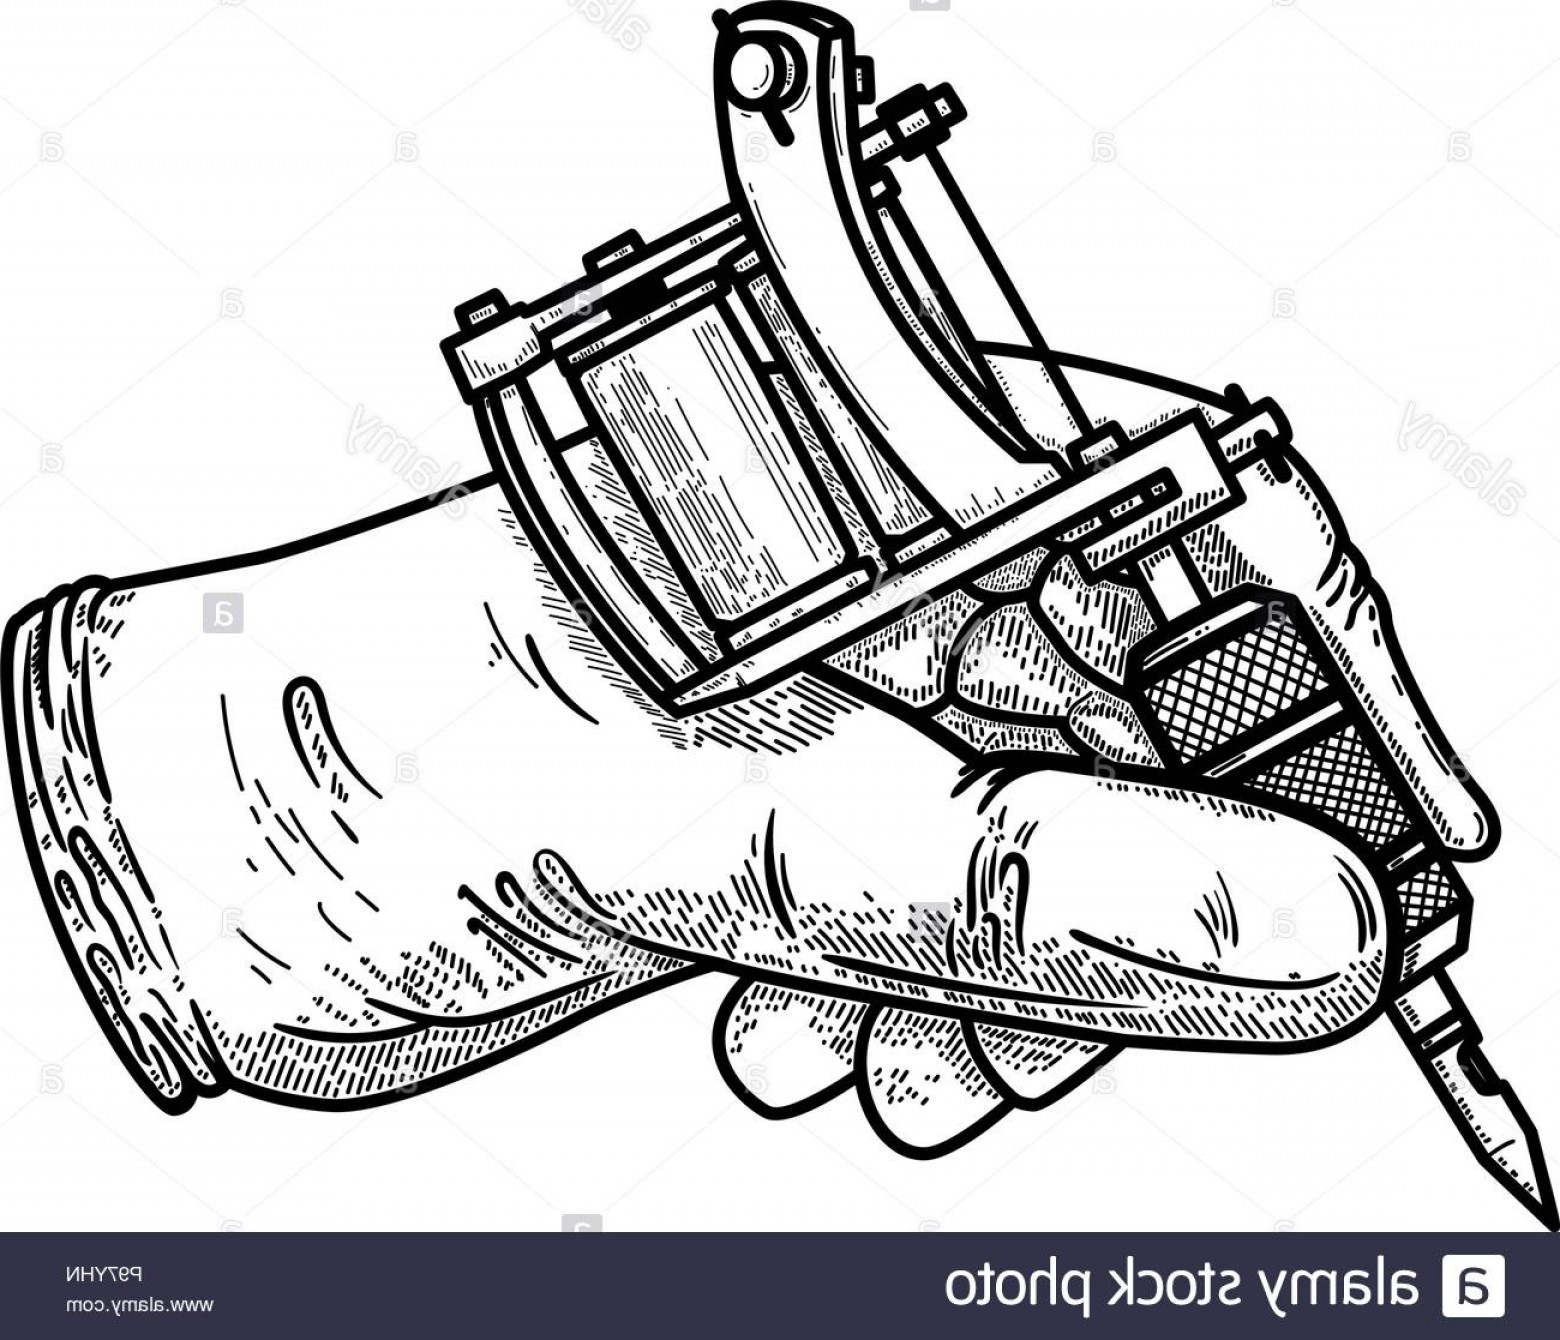 Tattoo Machine Vector Clip Art: Hand With Tattoo Machine Design Element For Poster Card T Shirt Emblem Sign Vector Illustration Image